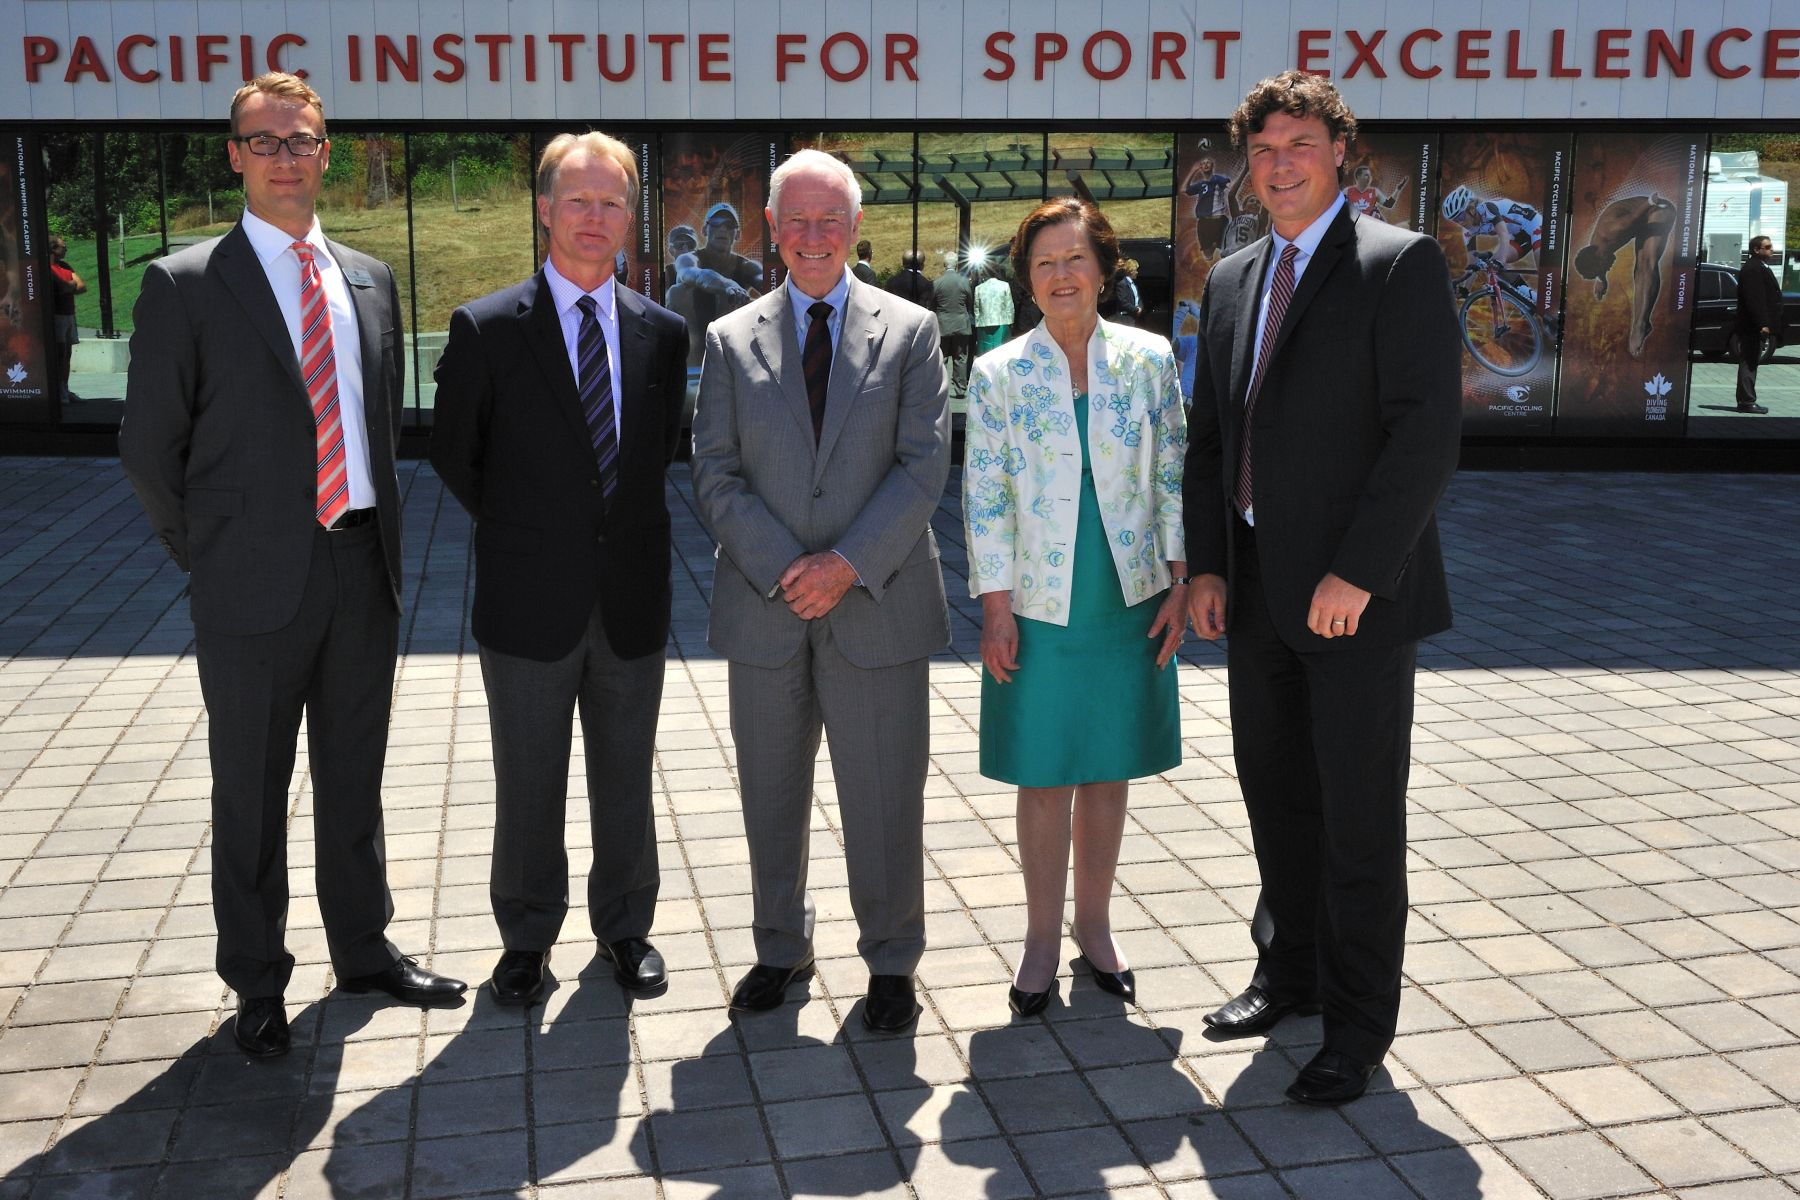 As patron of the Community Foundations of Canada, the Governor General attended the launch of the Victoria Foundation's Smart & Caring Community Fund. Upon his arrival, His Excellency was met by (from left to right) Mr. Mark Litwin, Mr. Robert Bettauer, CEO of the Pacific Institute of Sport Excellency, Ms. Sandra Richardson, CEO of the Victoria Foundation, and Mr. Ian Bird, President and CEO of Community Fondations of Canada.